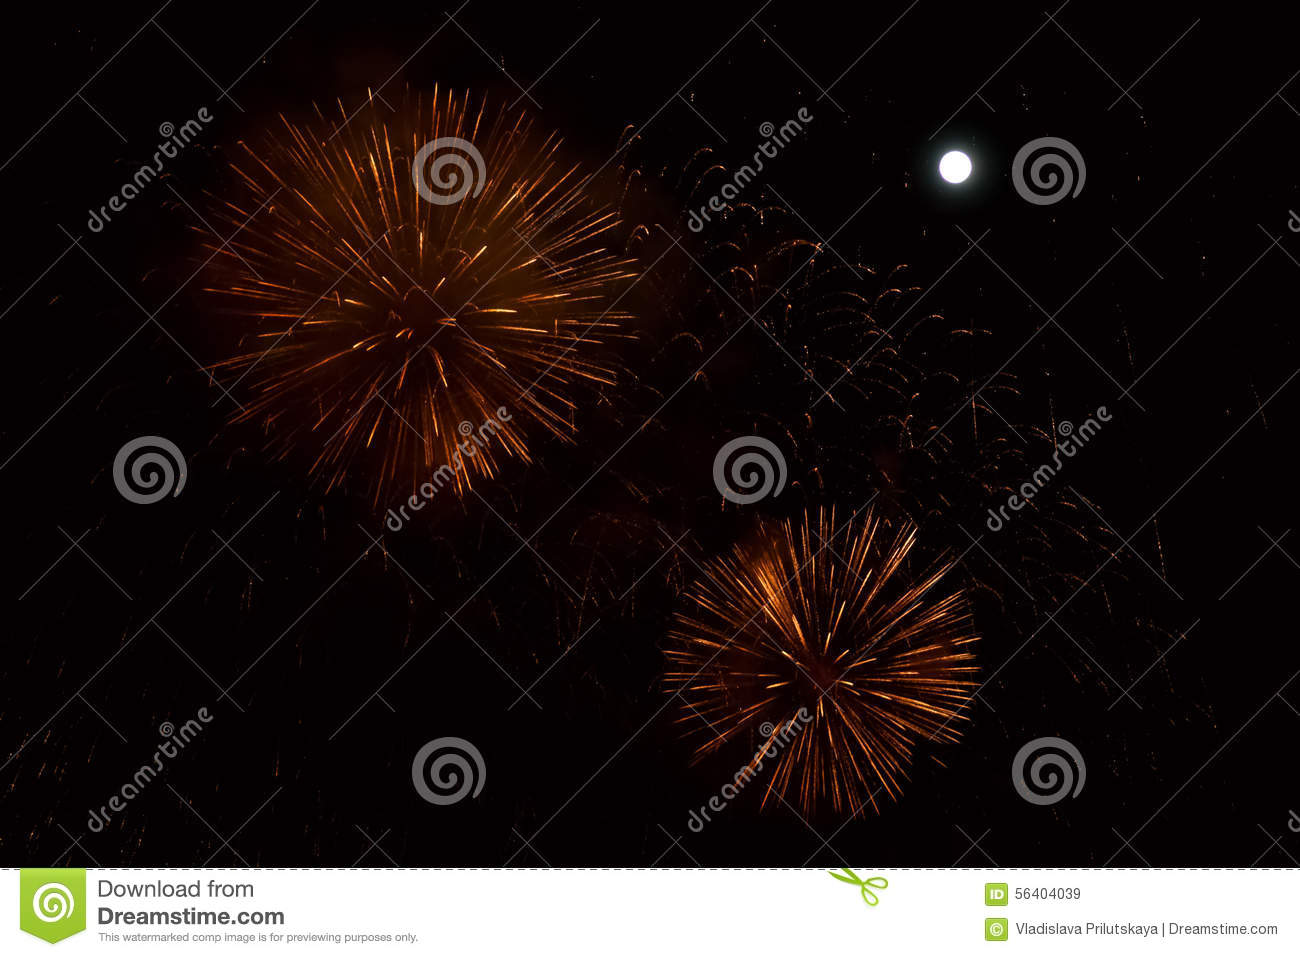 Red and golden fireworks at night background with moon